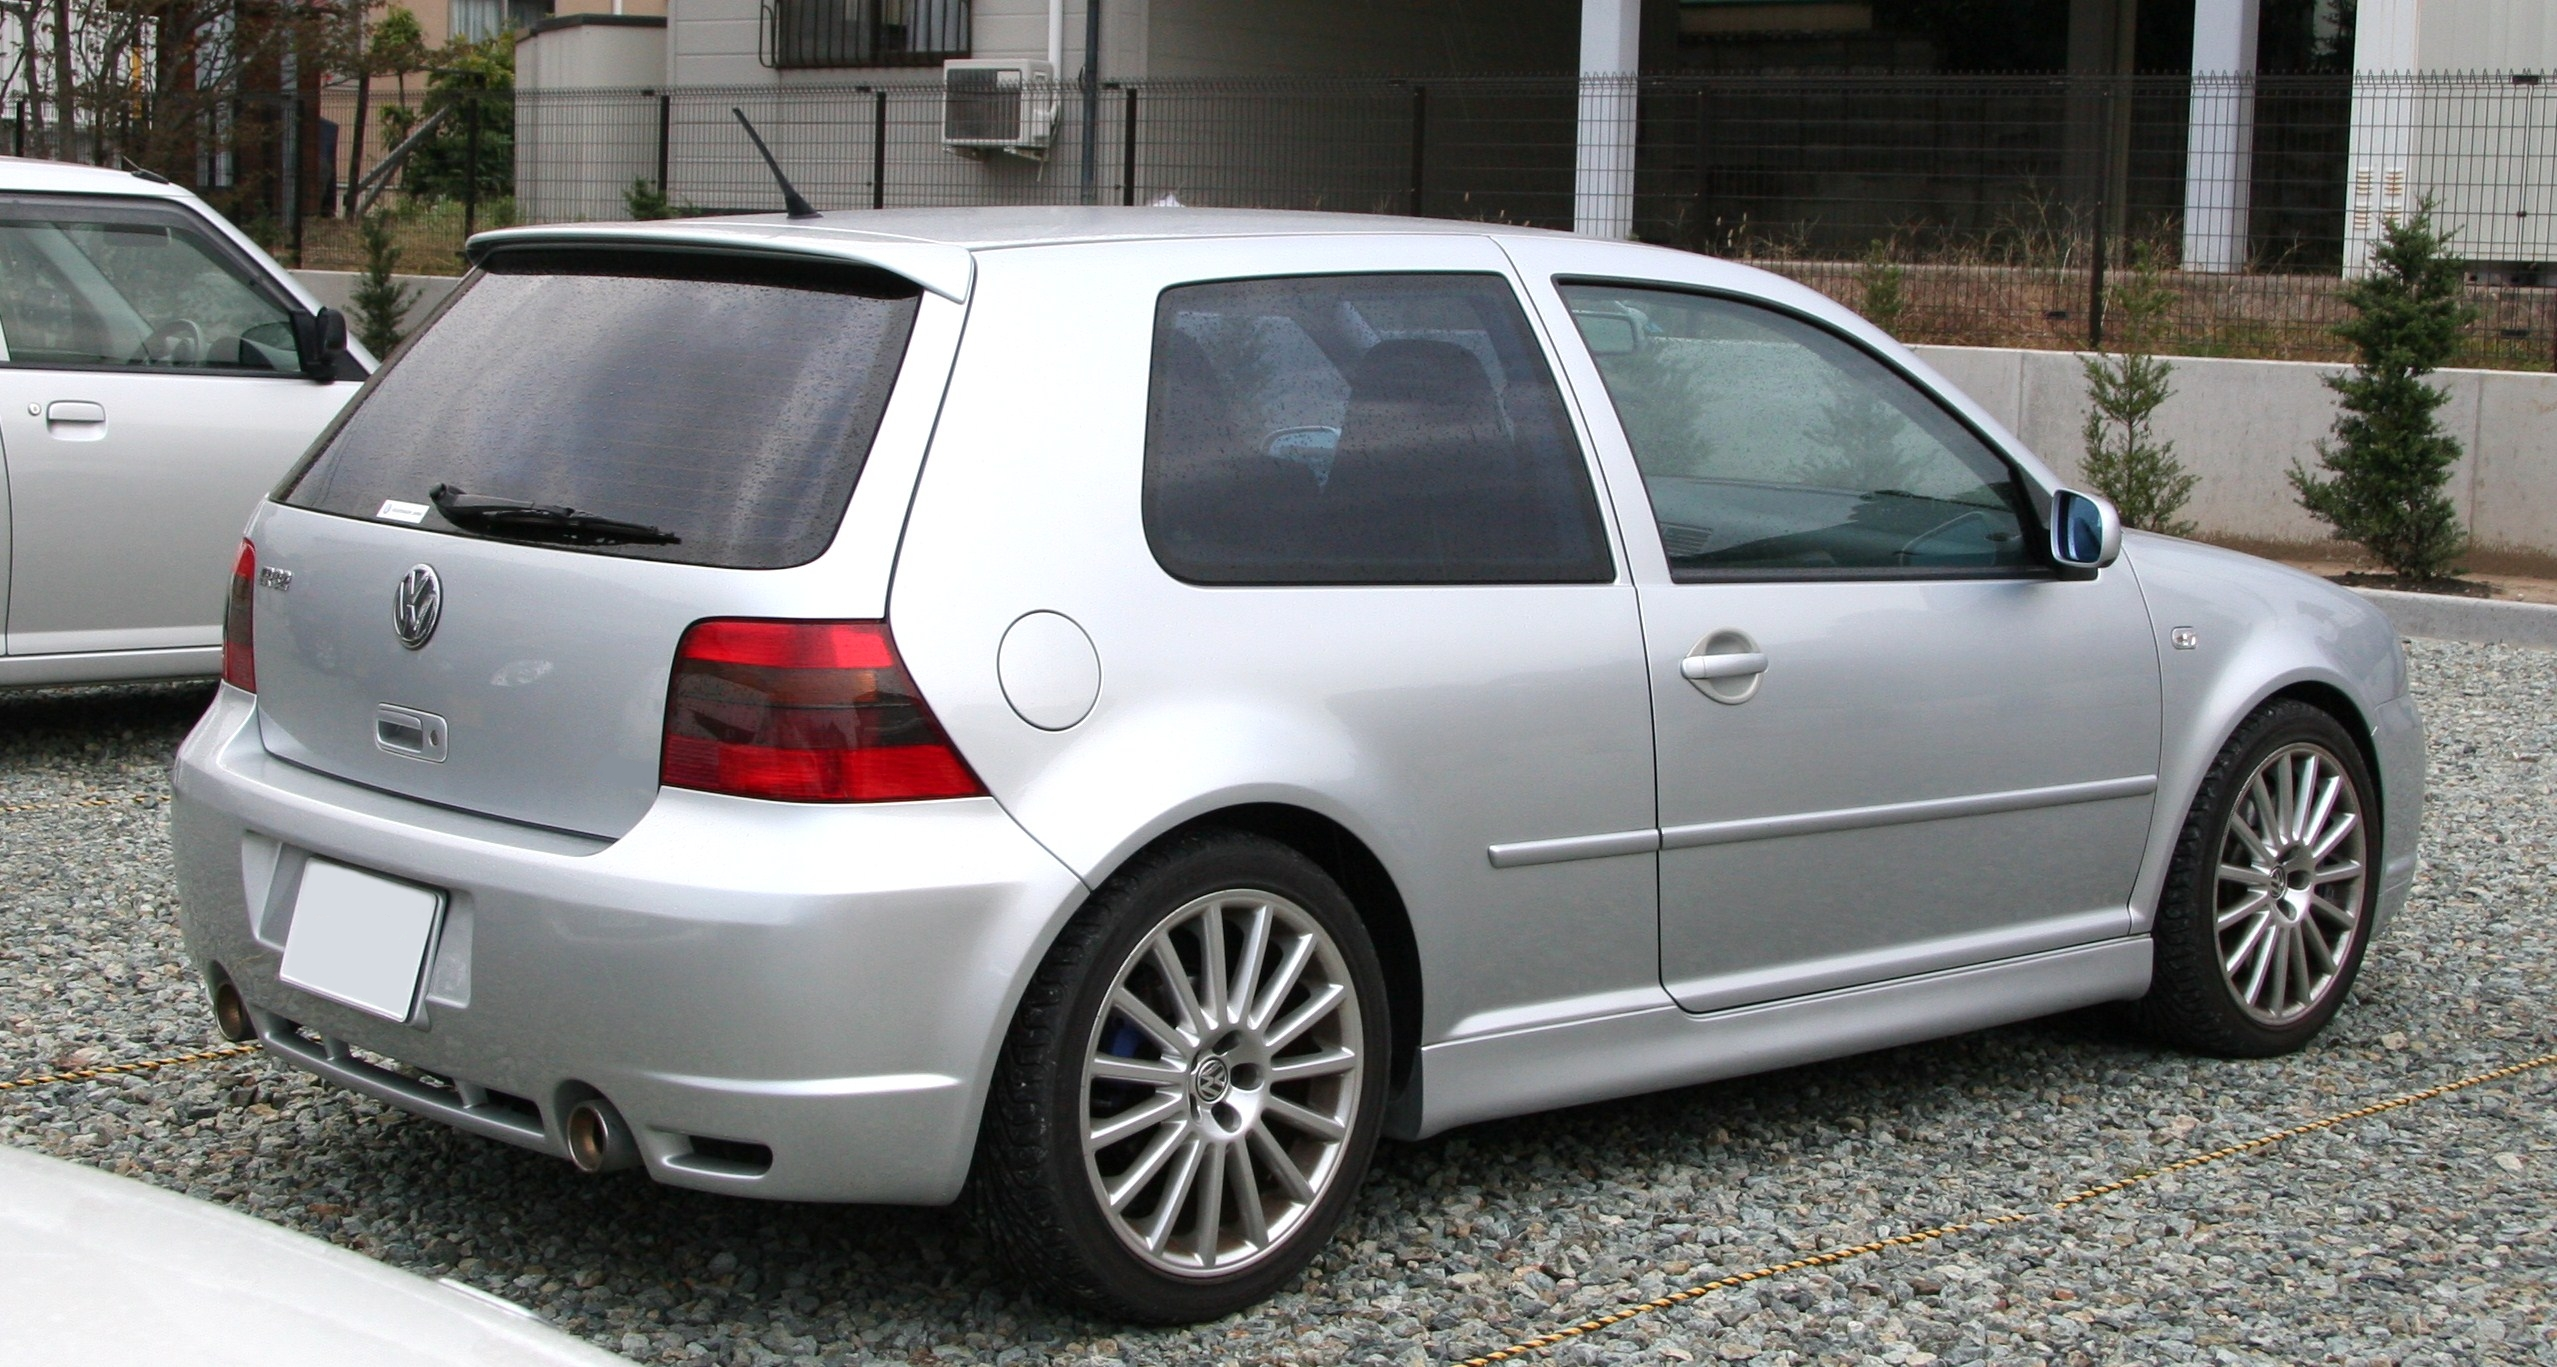 file volkswagen golf iv r32 wikimedia commons. Black Bedroom Furniture Sets. Home Design Ideas